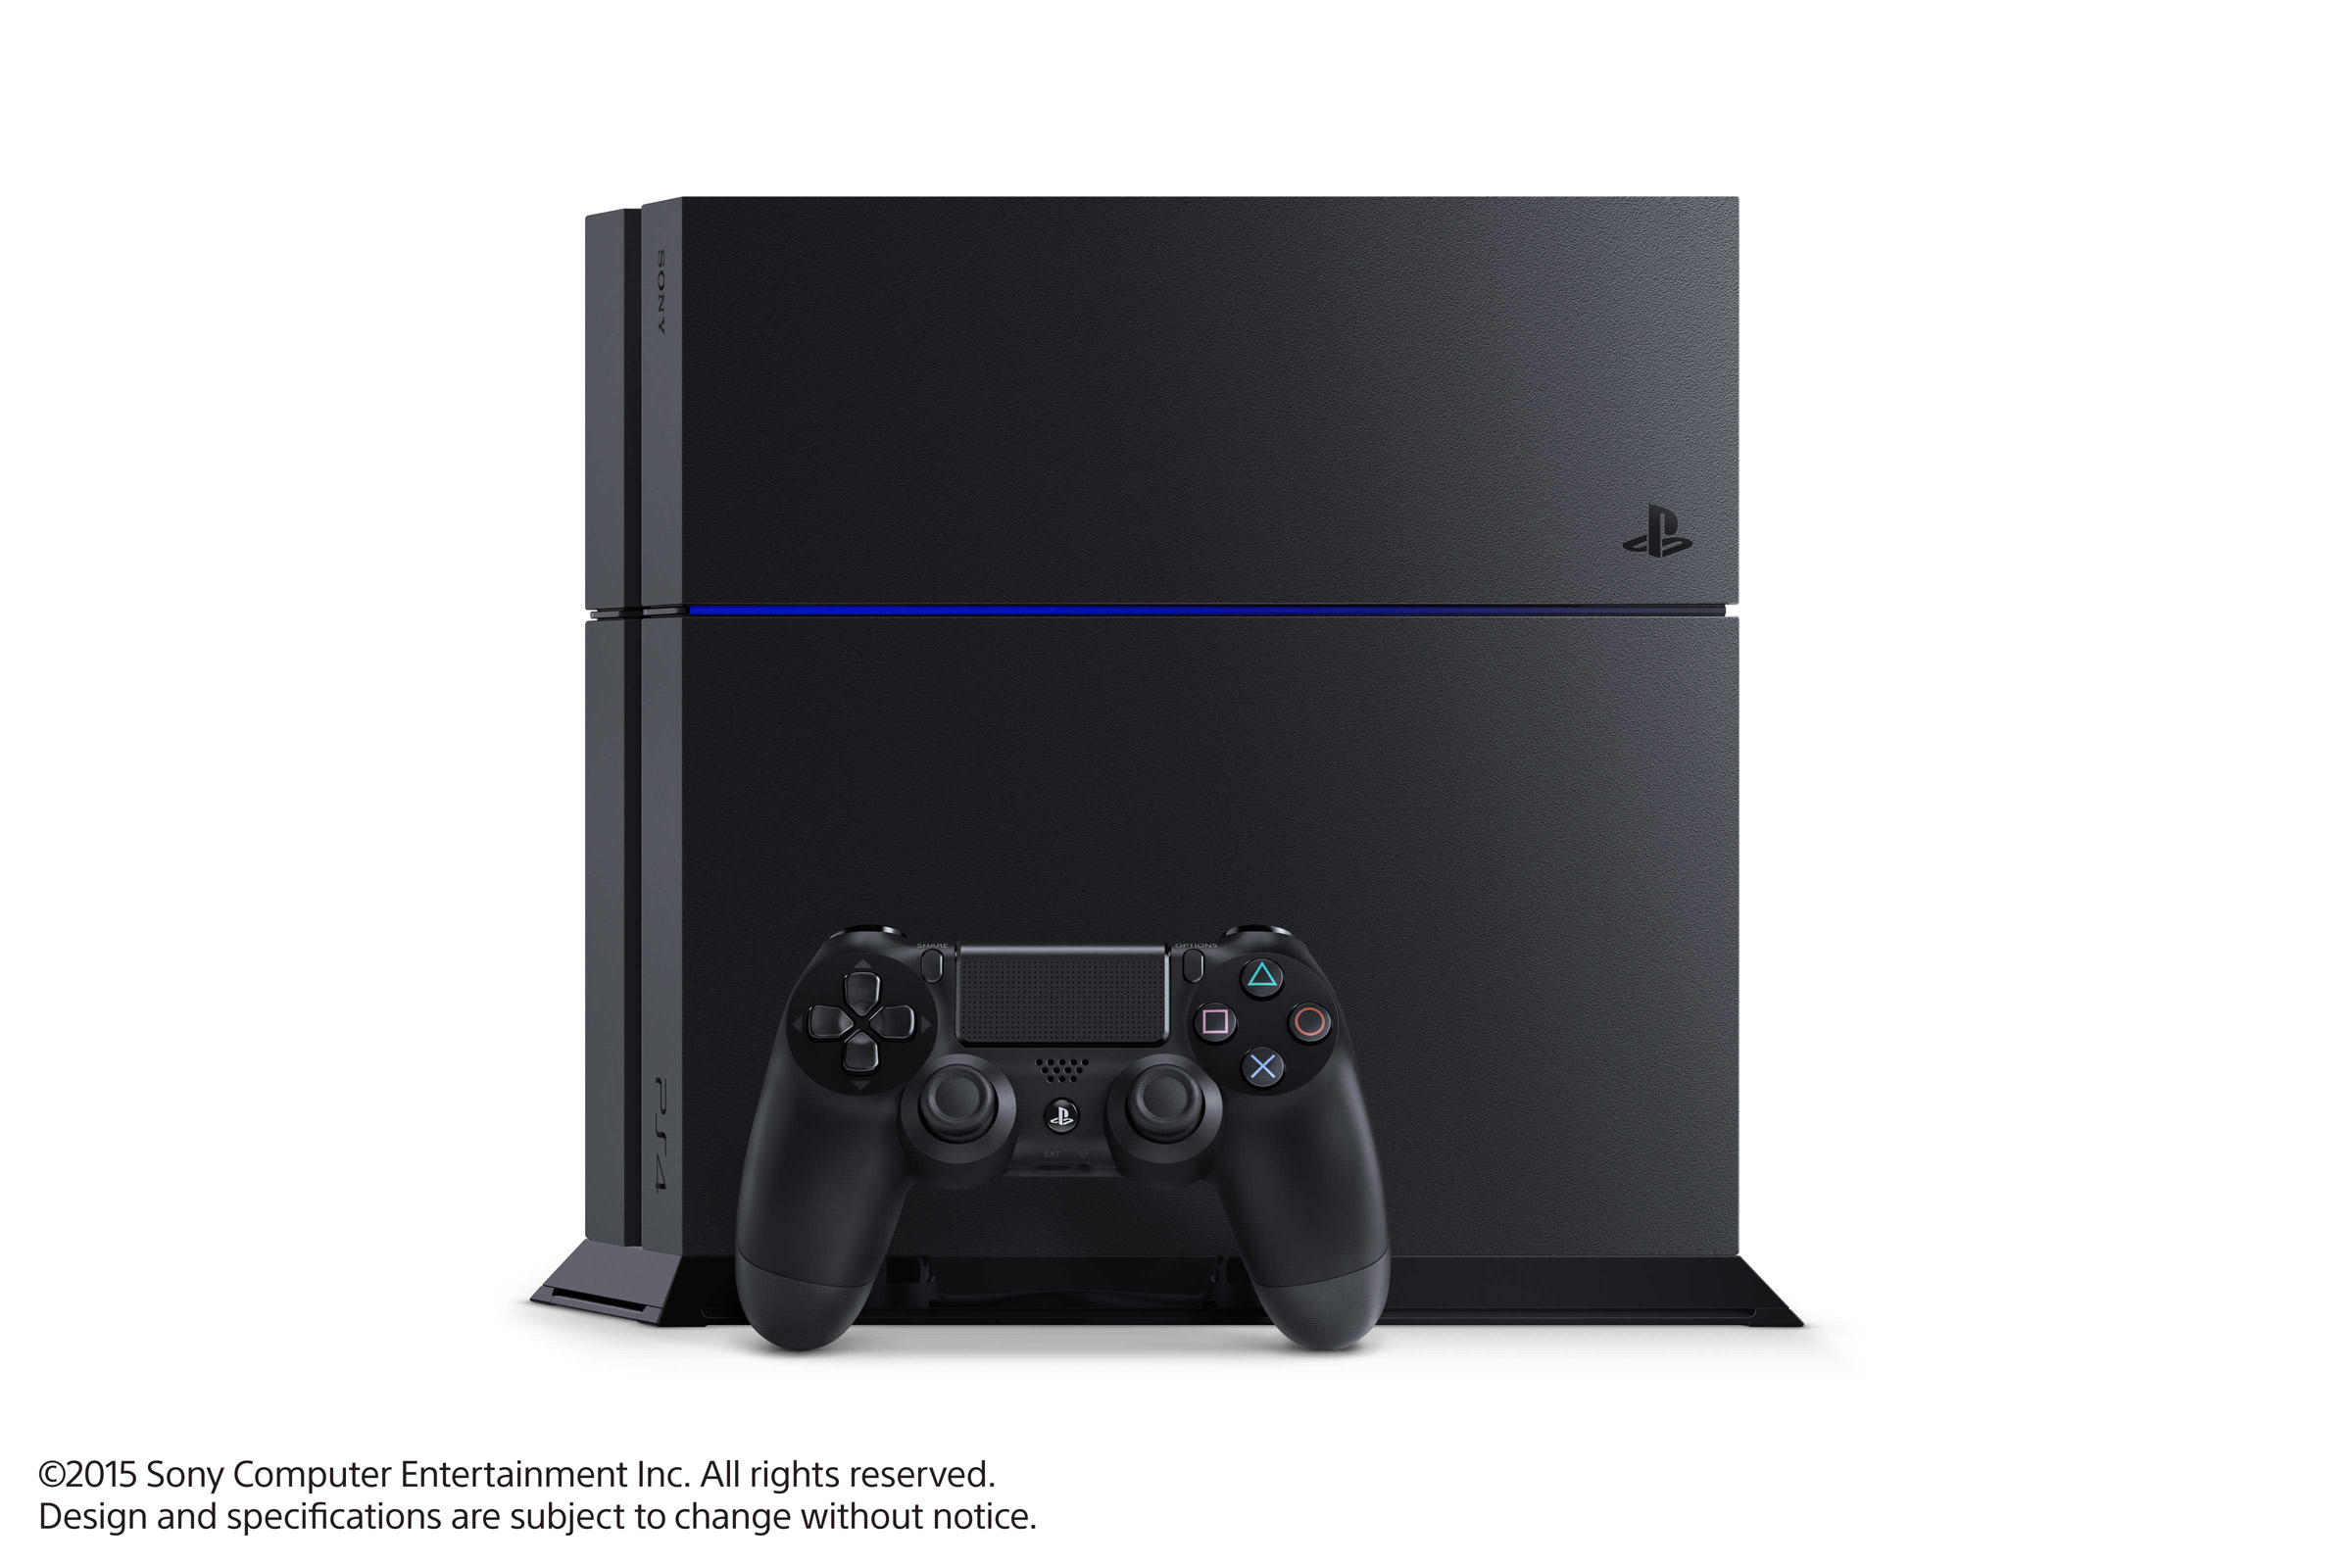 Sony Unveils Its Strong Hardware And Software Playstation Line Ups Ps4 Attack On Titan Including The Worlds First Trailer Of Working Title From Koei Tecmo Games Co Ltd For Playstation3 Ps Vita